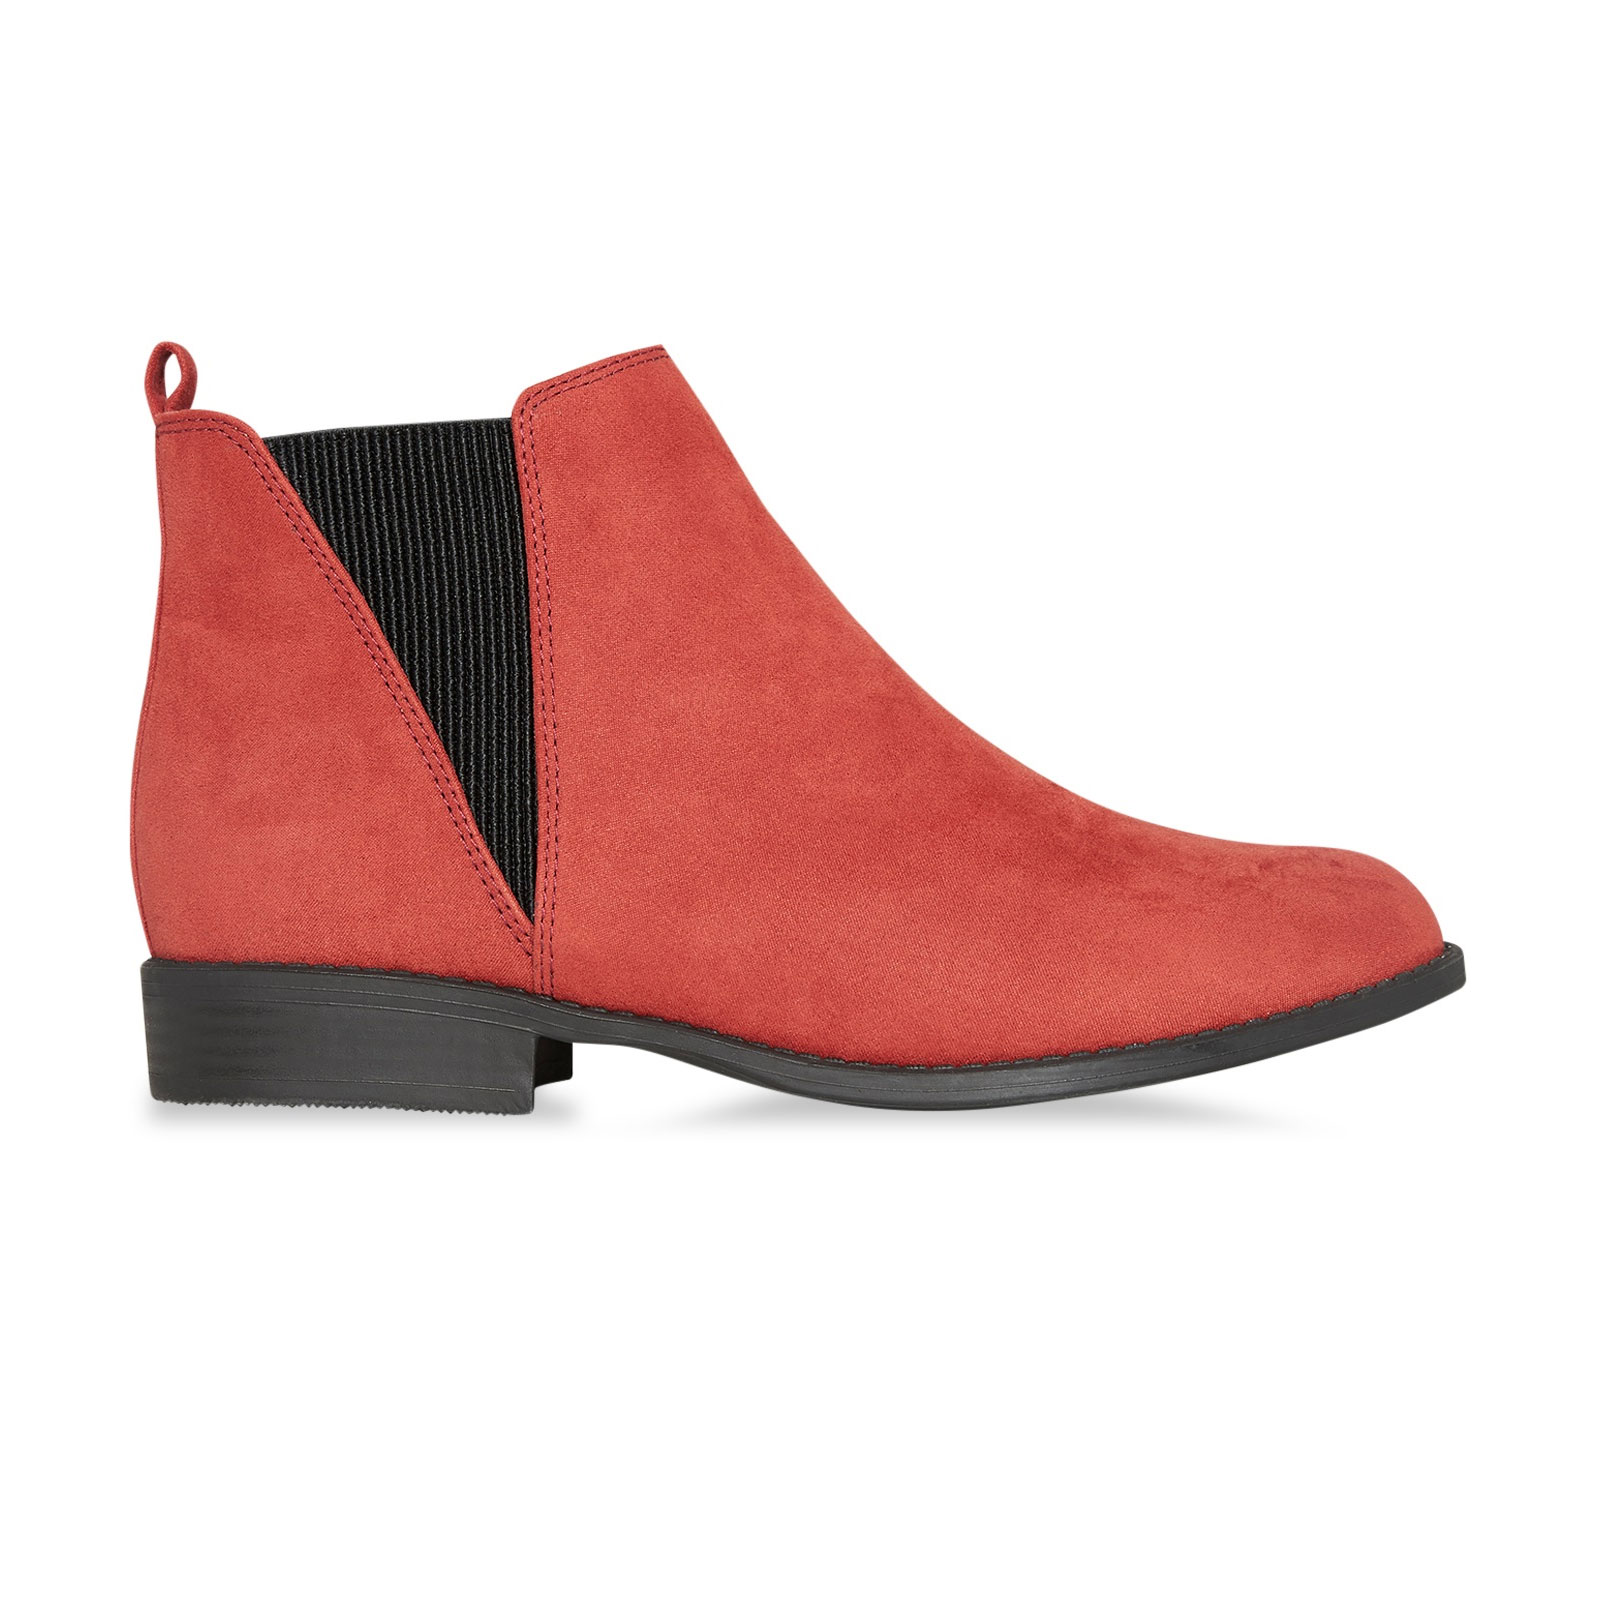 Ladies-Womens-Chelsea-Dealer-Boots-Suede-Ankle-Slip-On-Low-Heel-Shoes-Size-3-8 thumbnail 5